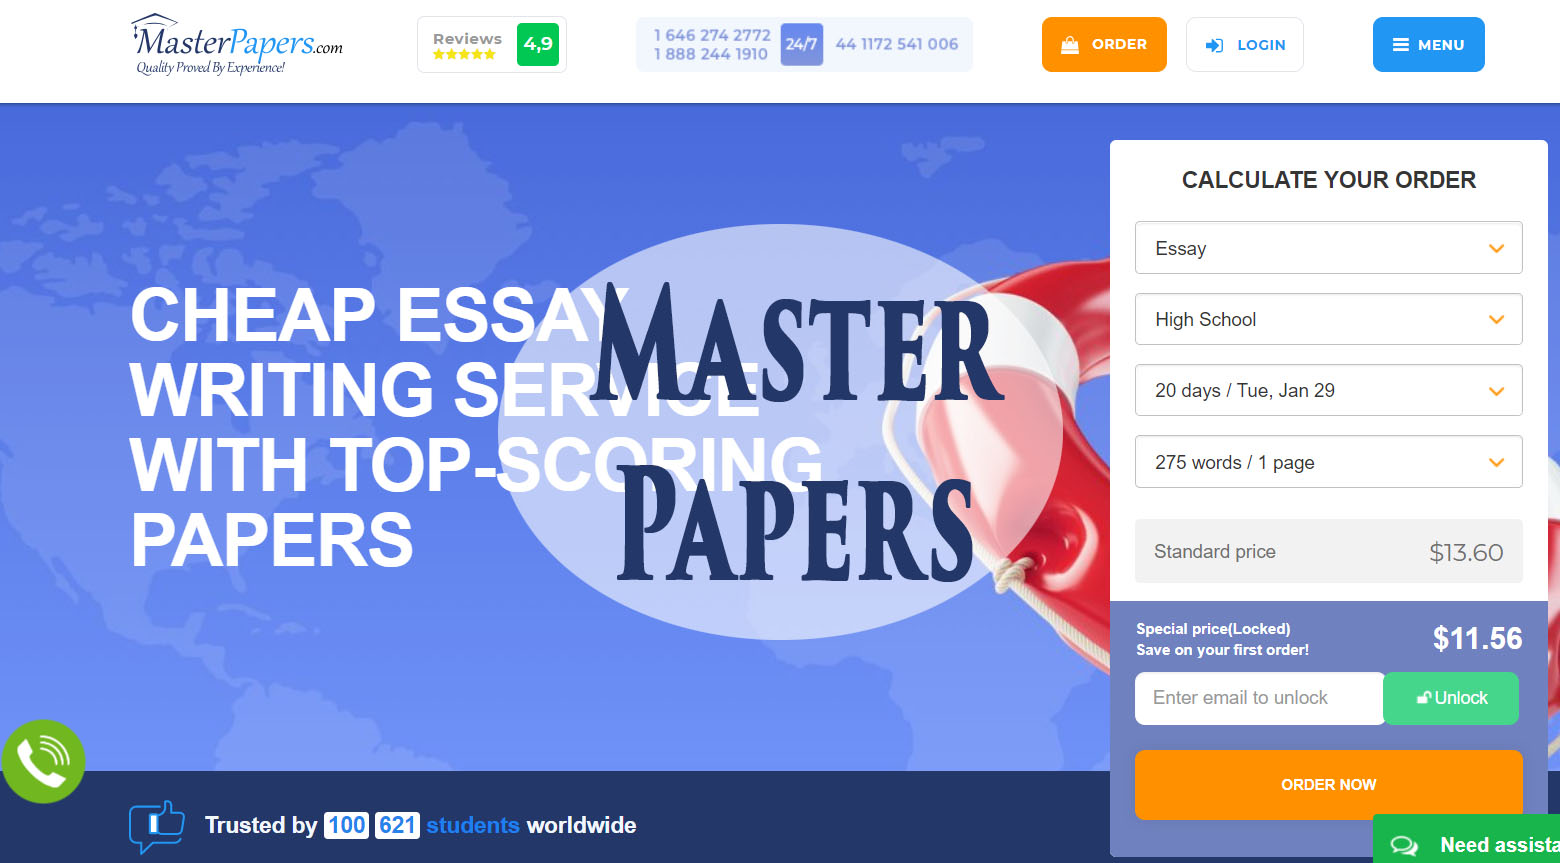 Related:www masterpapers com/ masterpapers